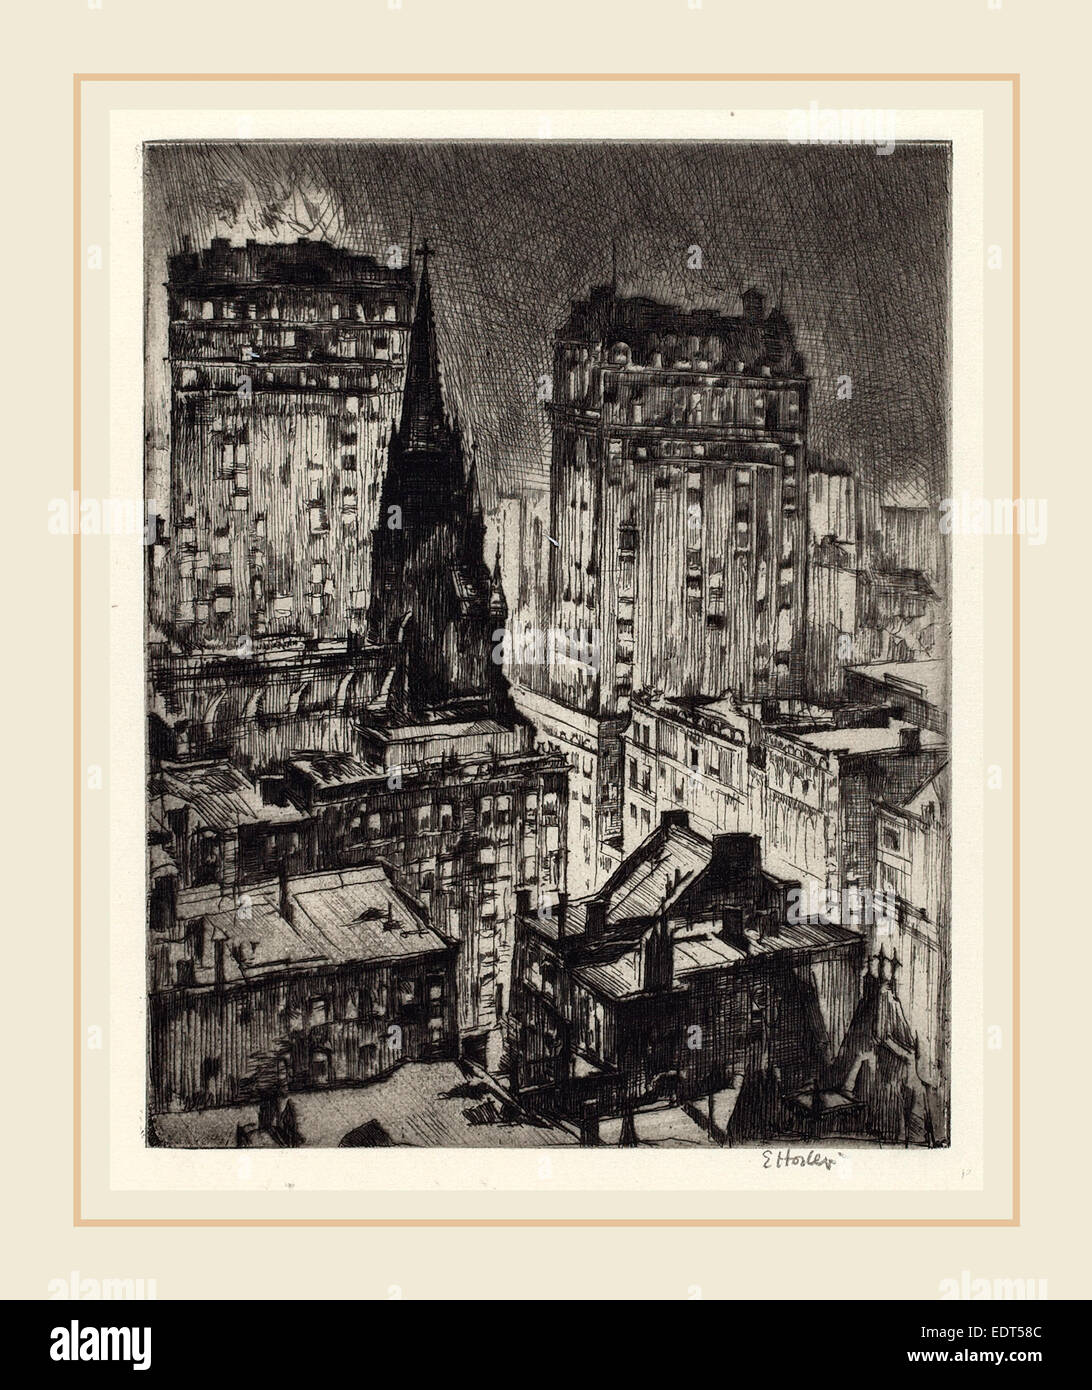 Earl Horter, The Dark Tower, American, 1881-1940, 1919, etching - Stock Image